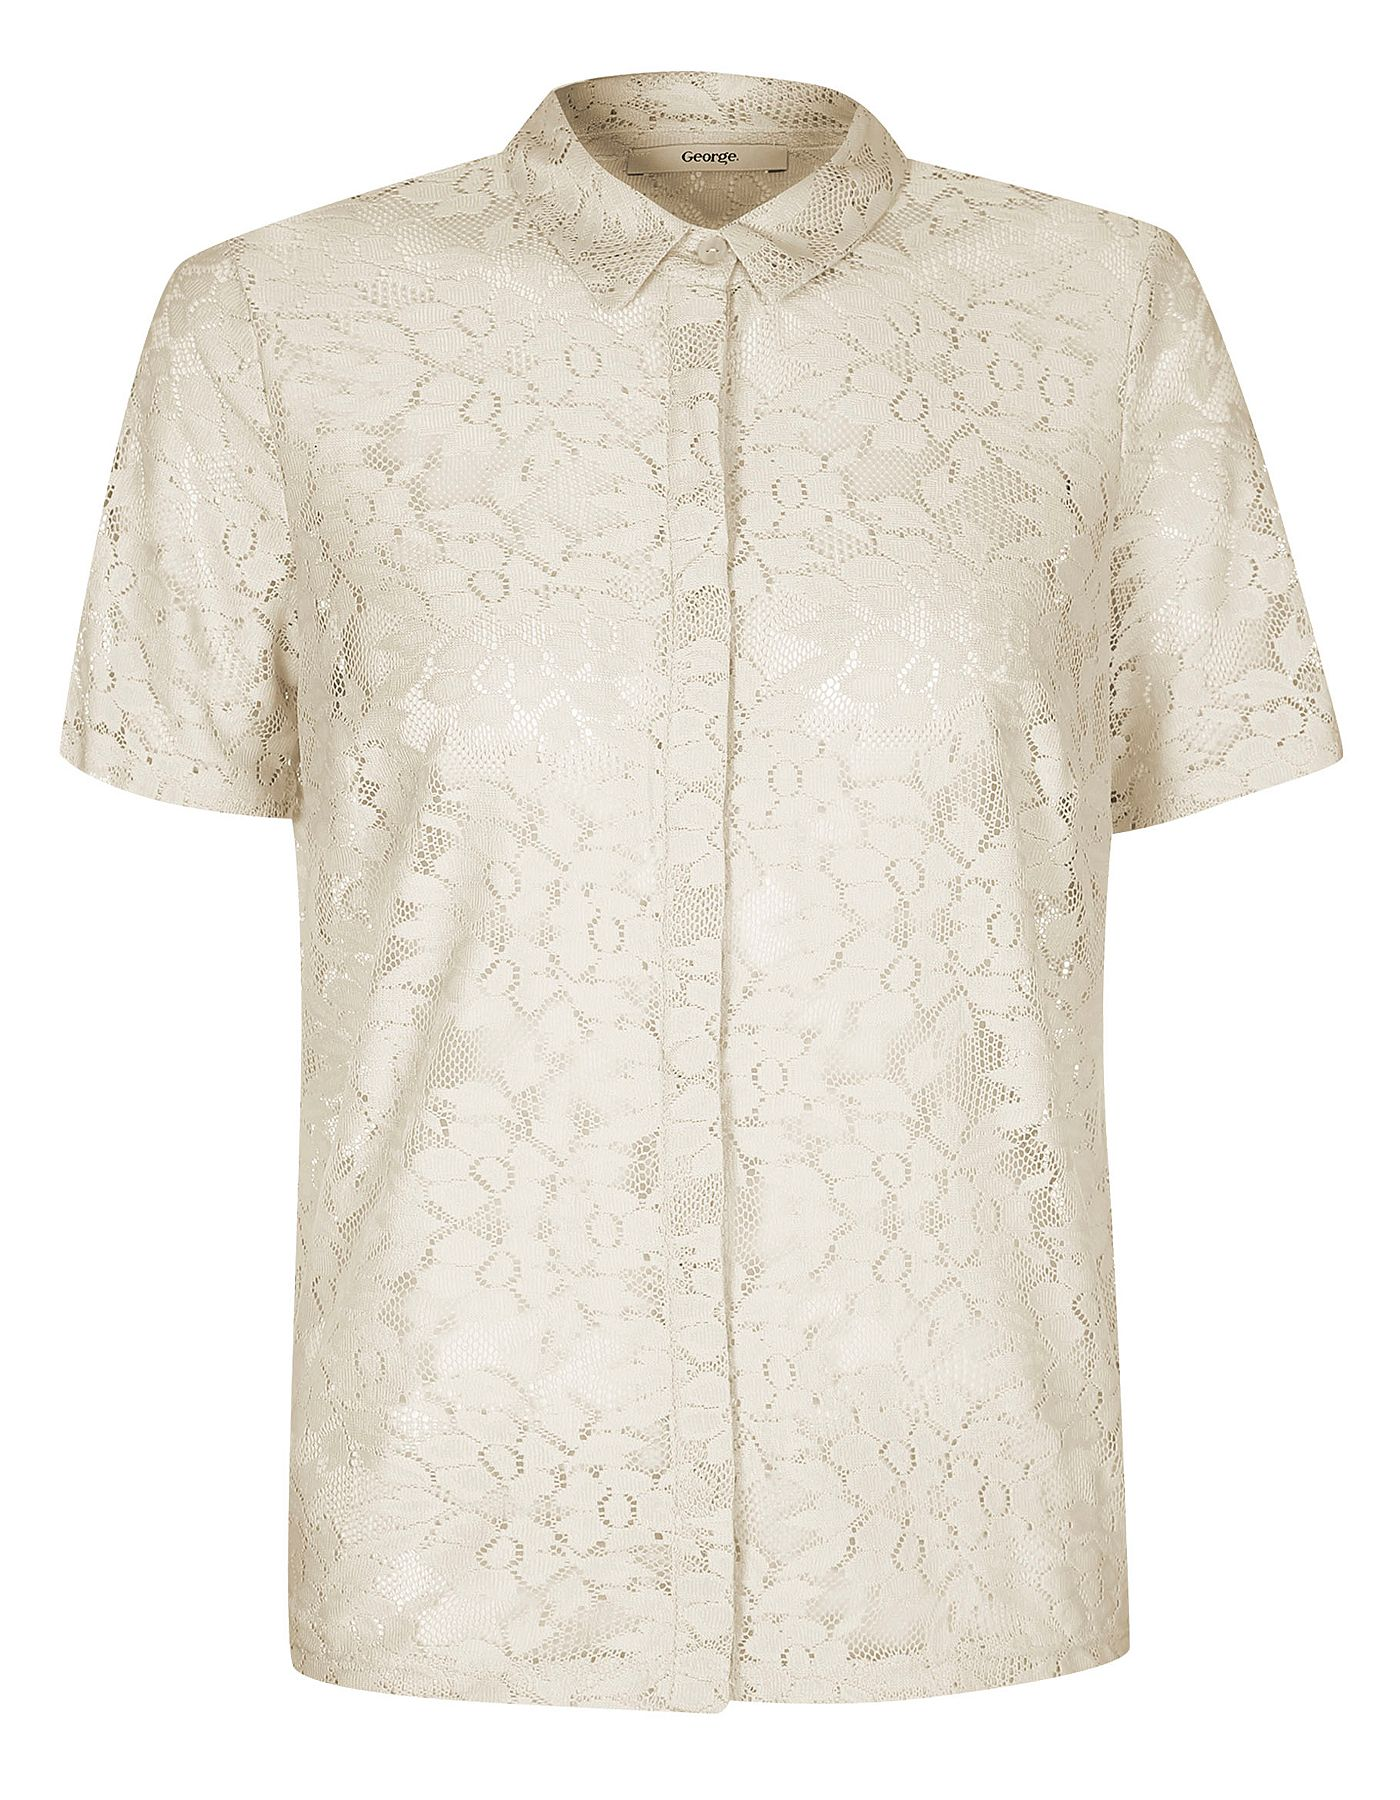 f12bb88c42d30 Ladies White Shirts Asda – EDGE Engineering and Consulting Limited